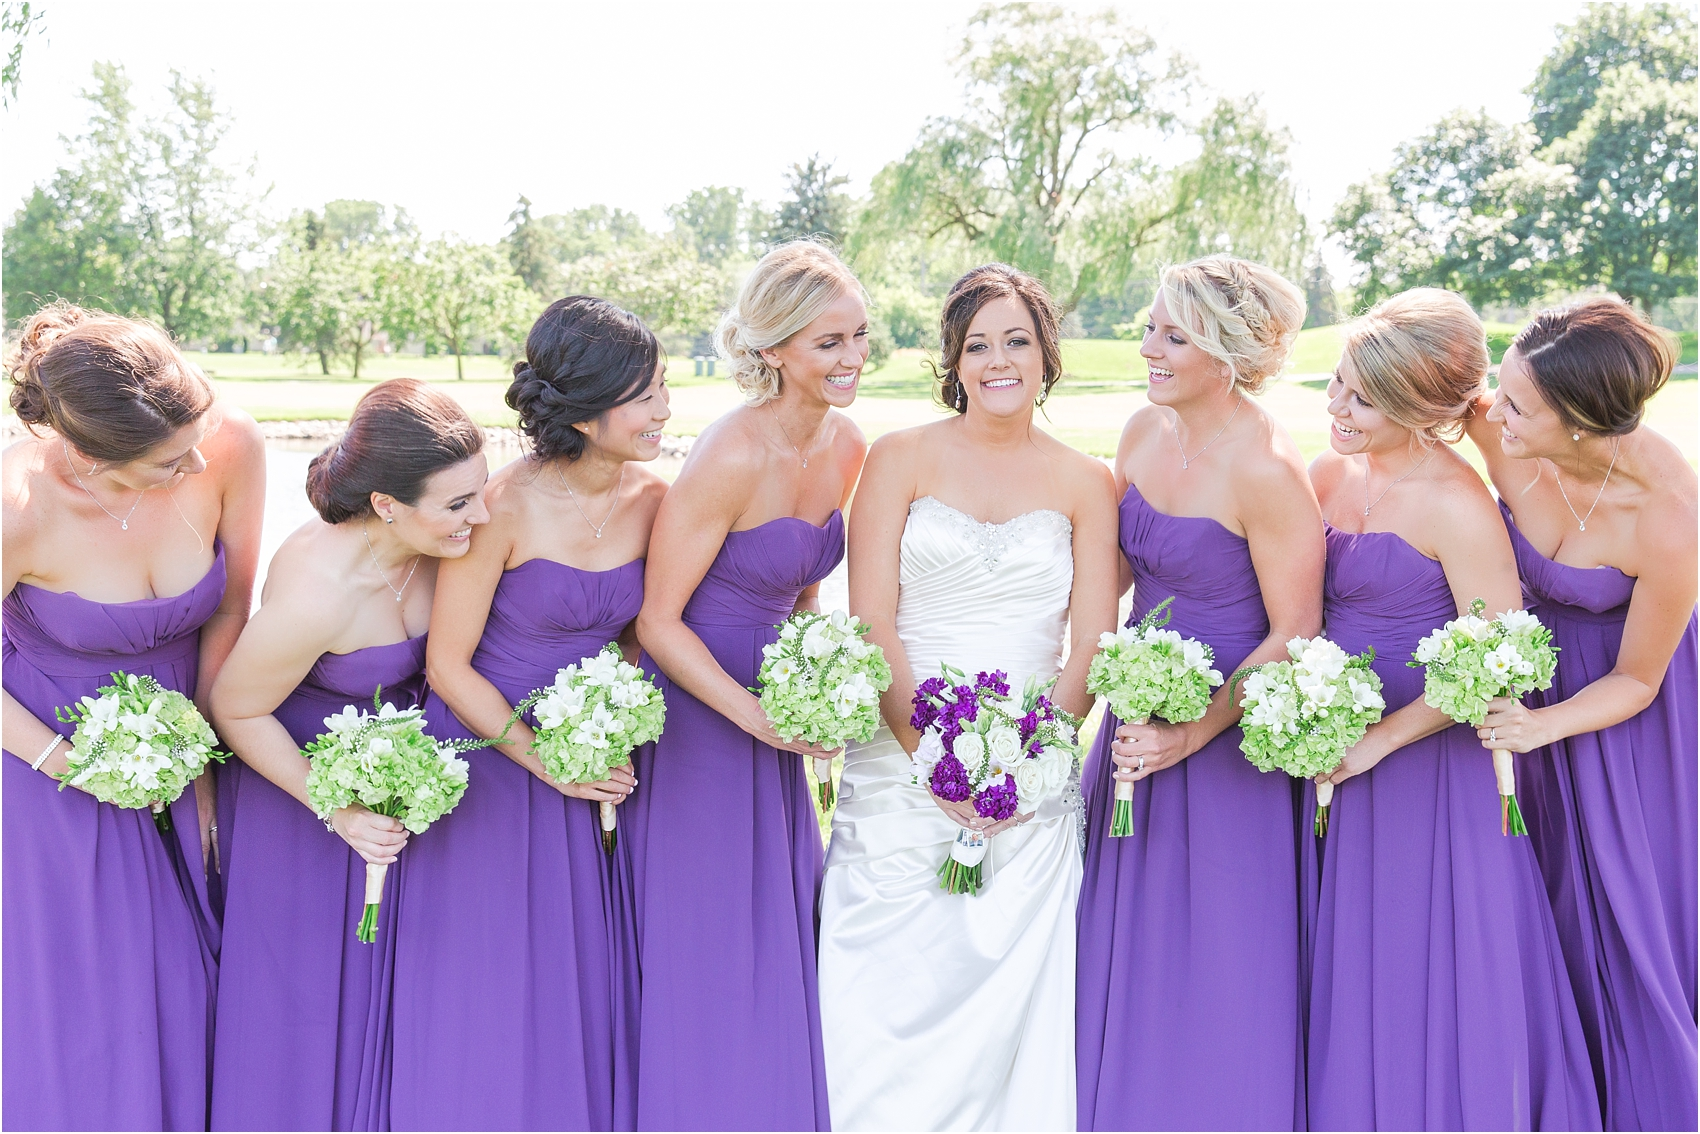 classic-wedding-photos-at-great-oaks-country-club-in-rochester-hills-mi-by-courtney-carolyn-photography_0036.jpg